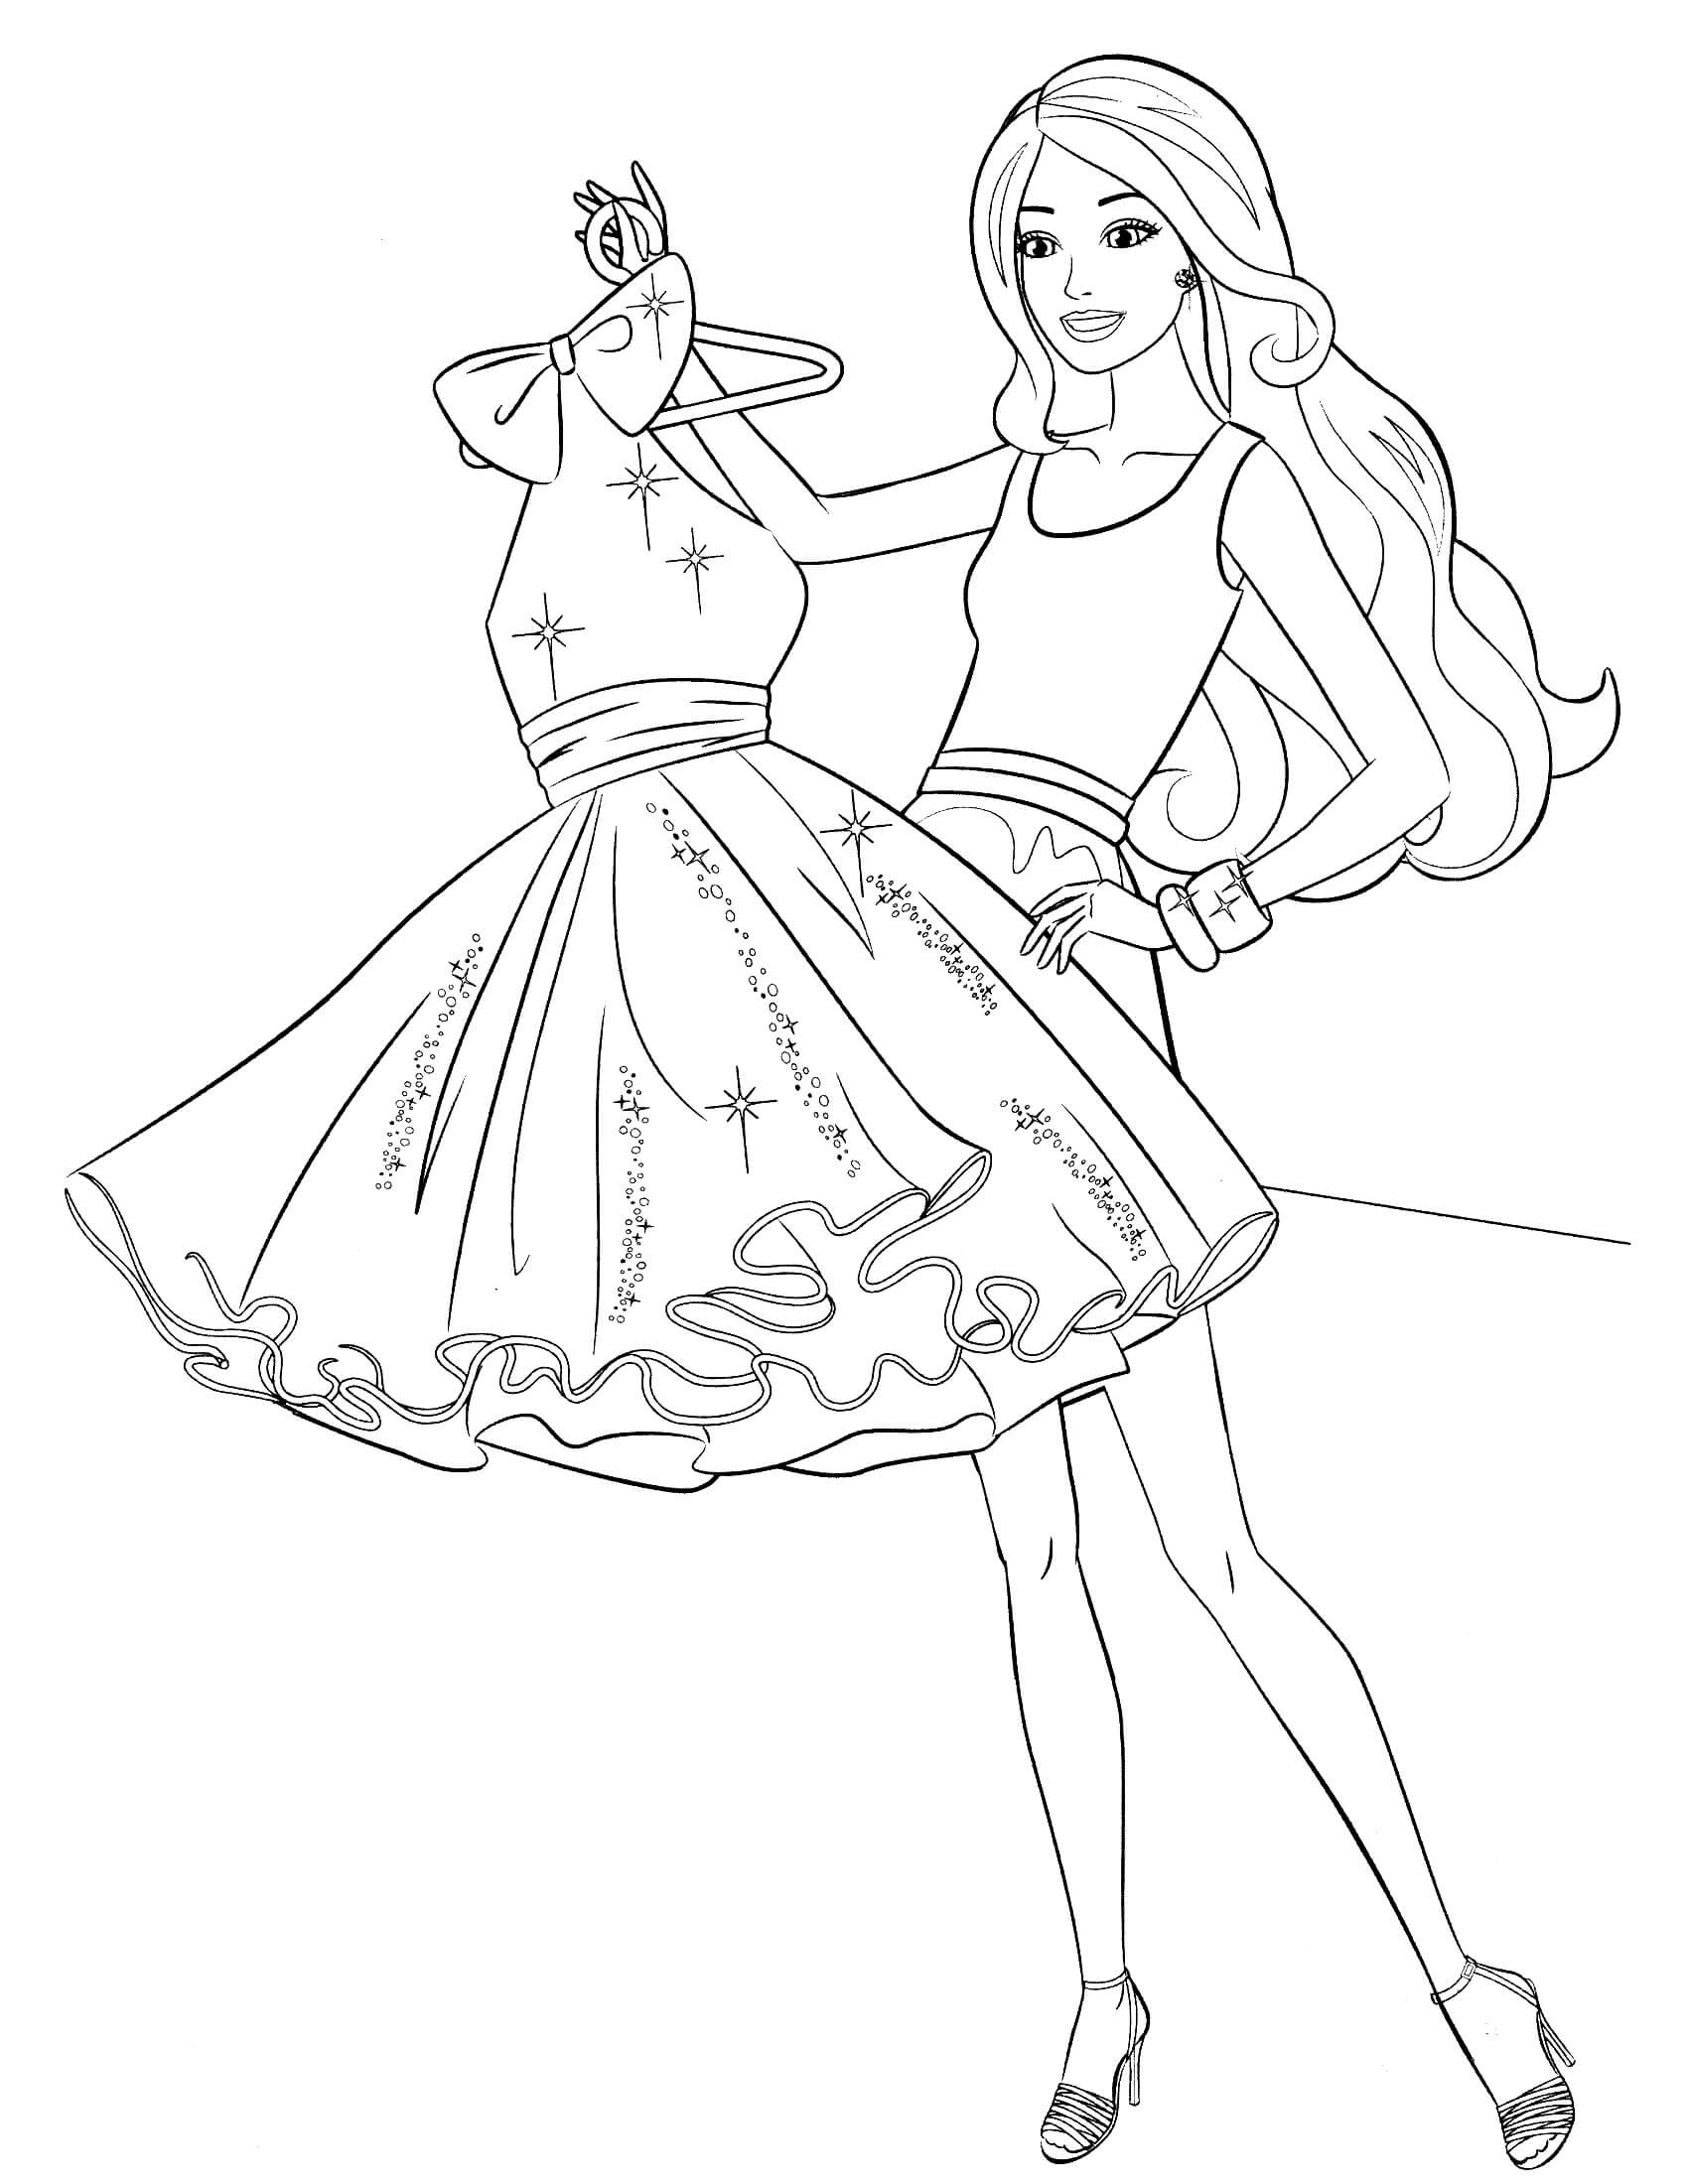 strawberry shortcake coloring pages - barbie coloring page 38